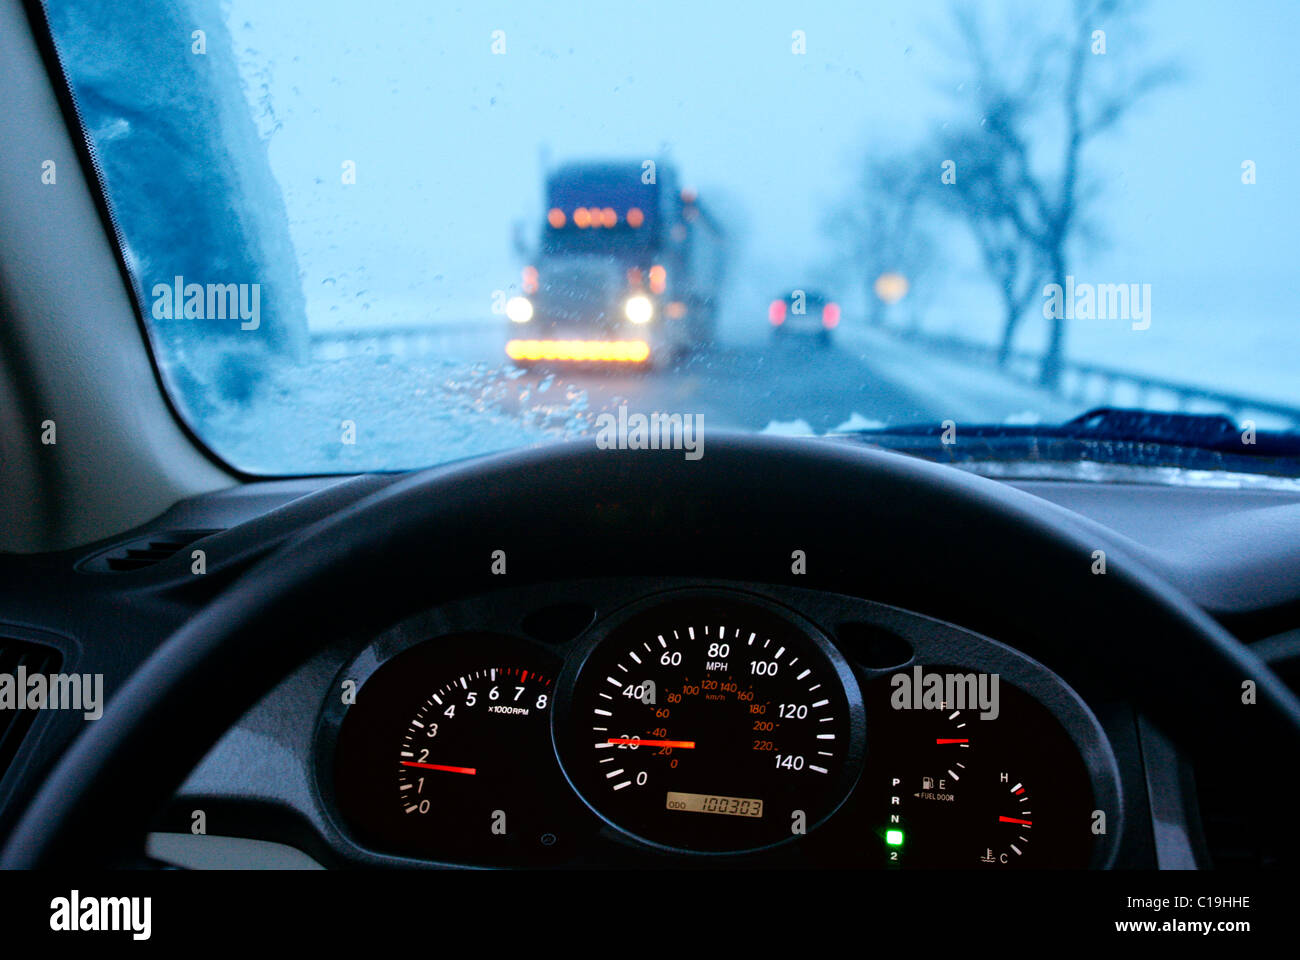 Dangerous Driving. - Stock Image